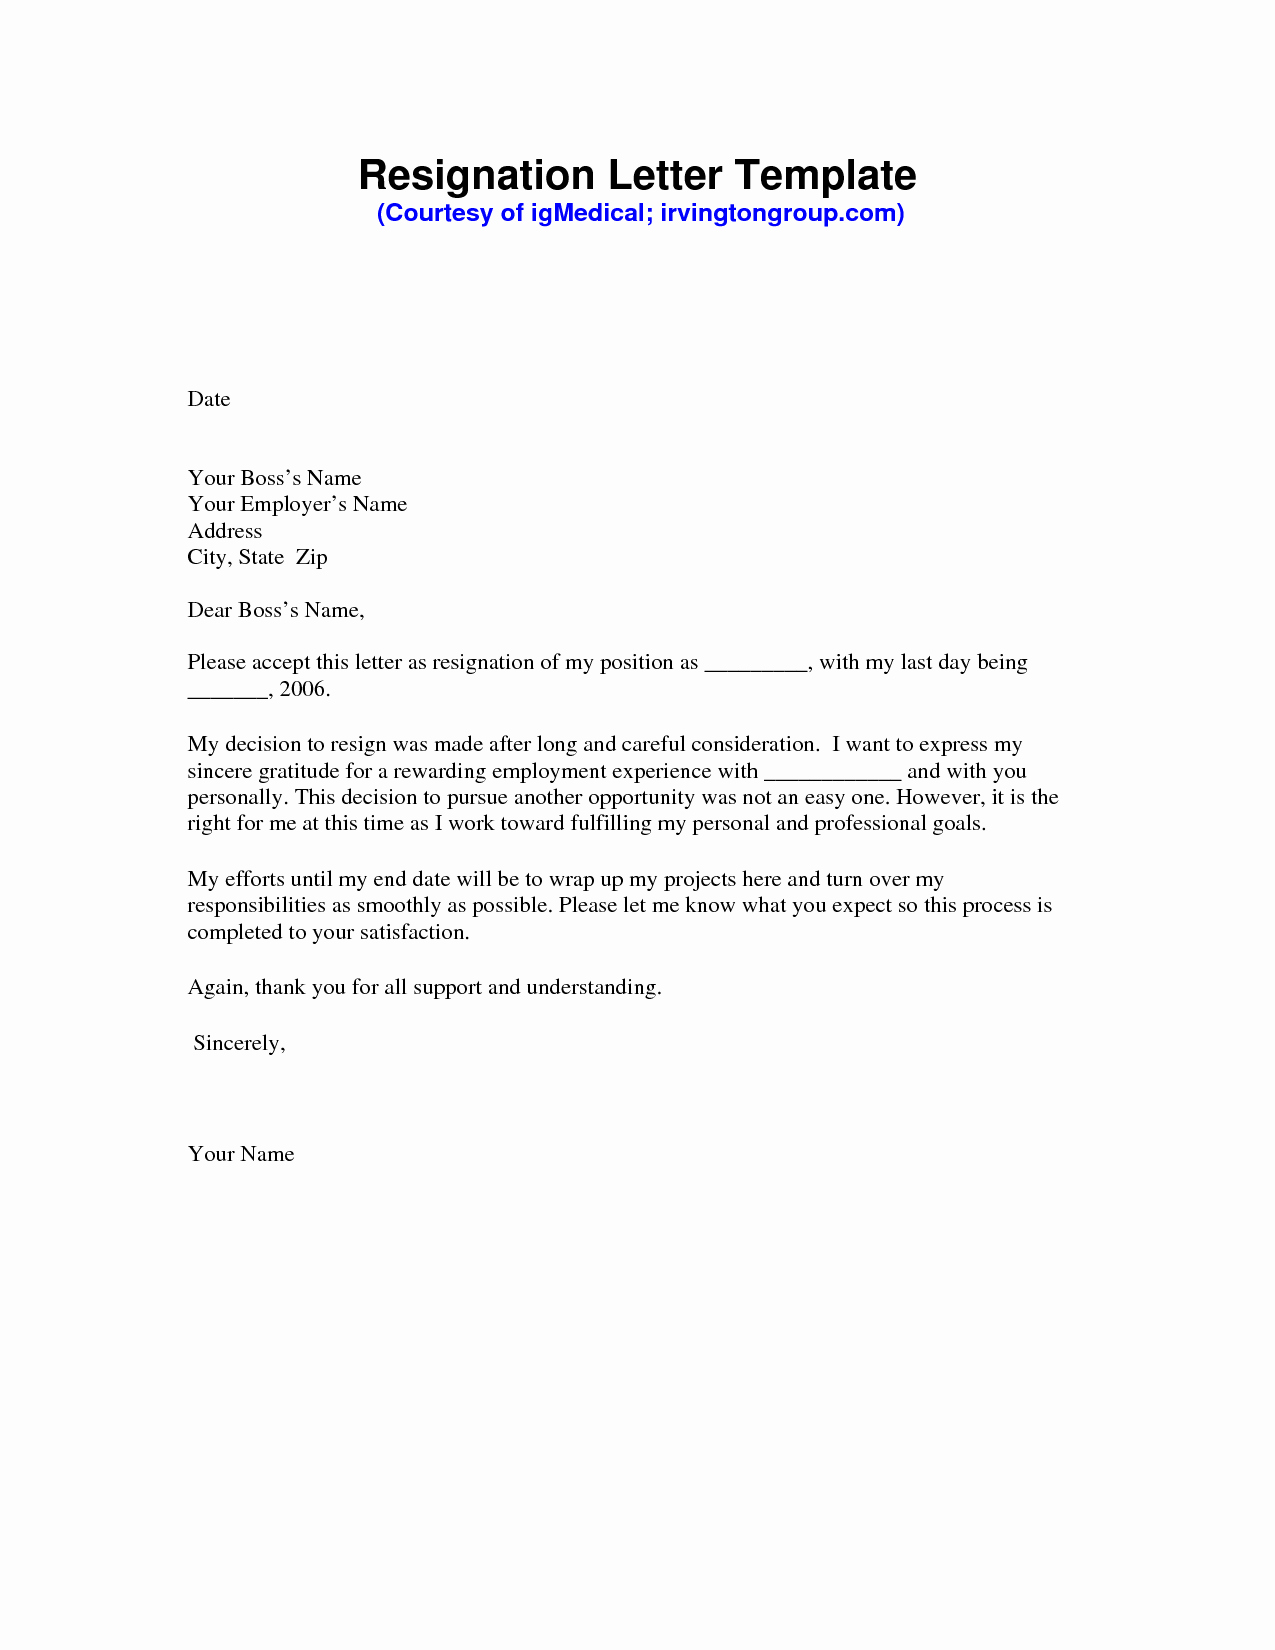 Resignation Letter Template Pdf Beautiful Resignation Letter Sample Pdf